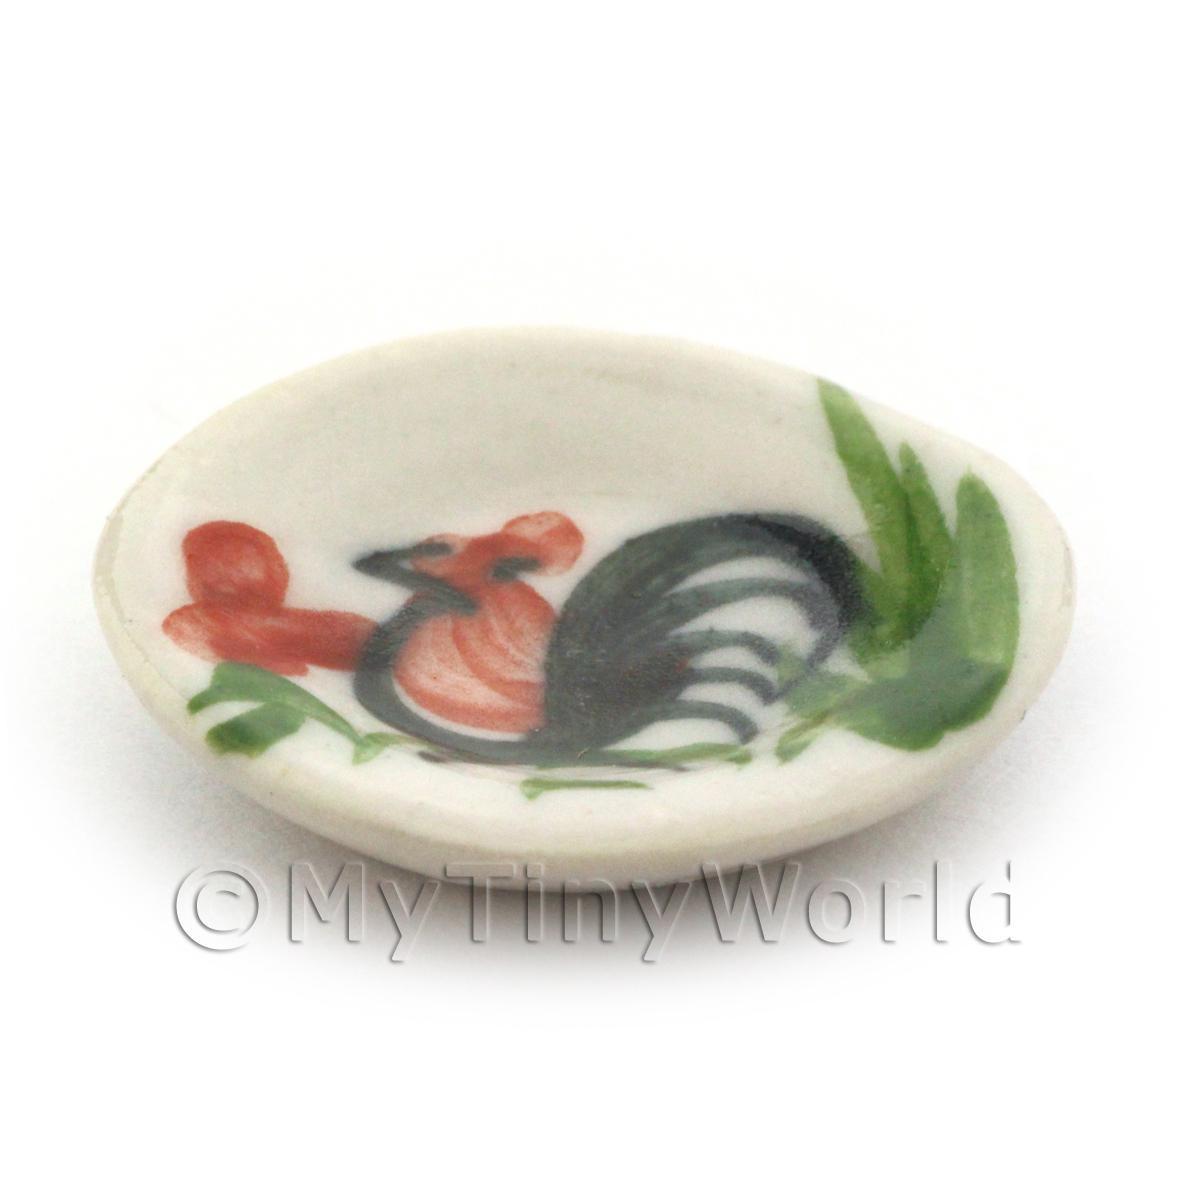 20mm Dolls House Miniature White Ceramic Cockerel Plate